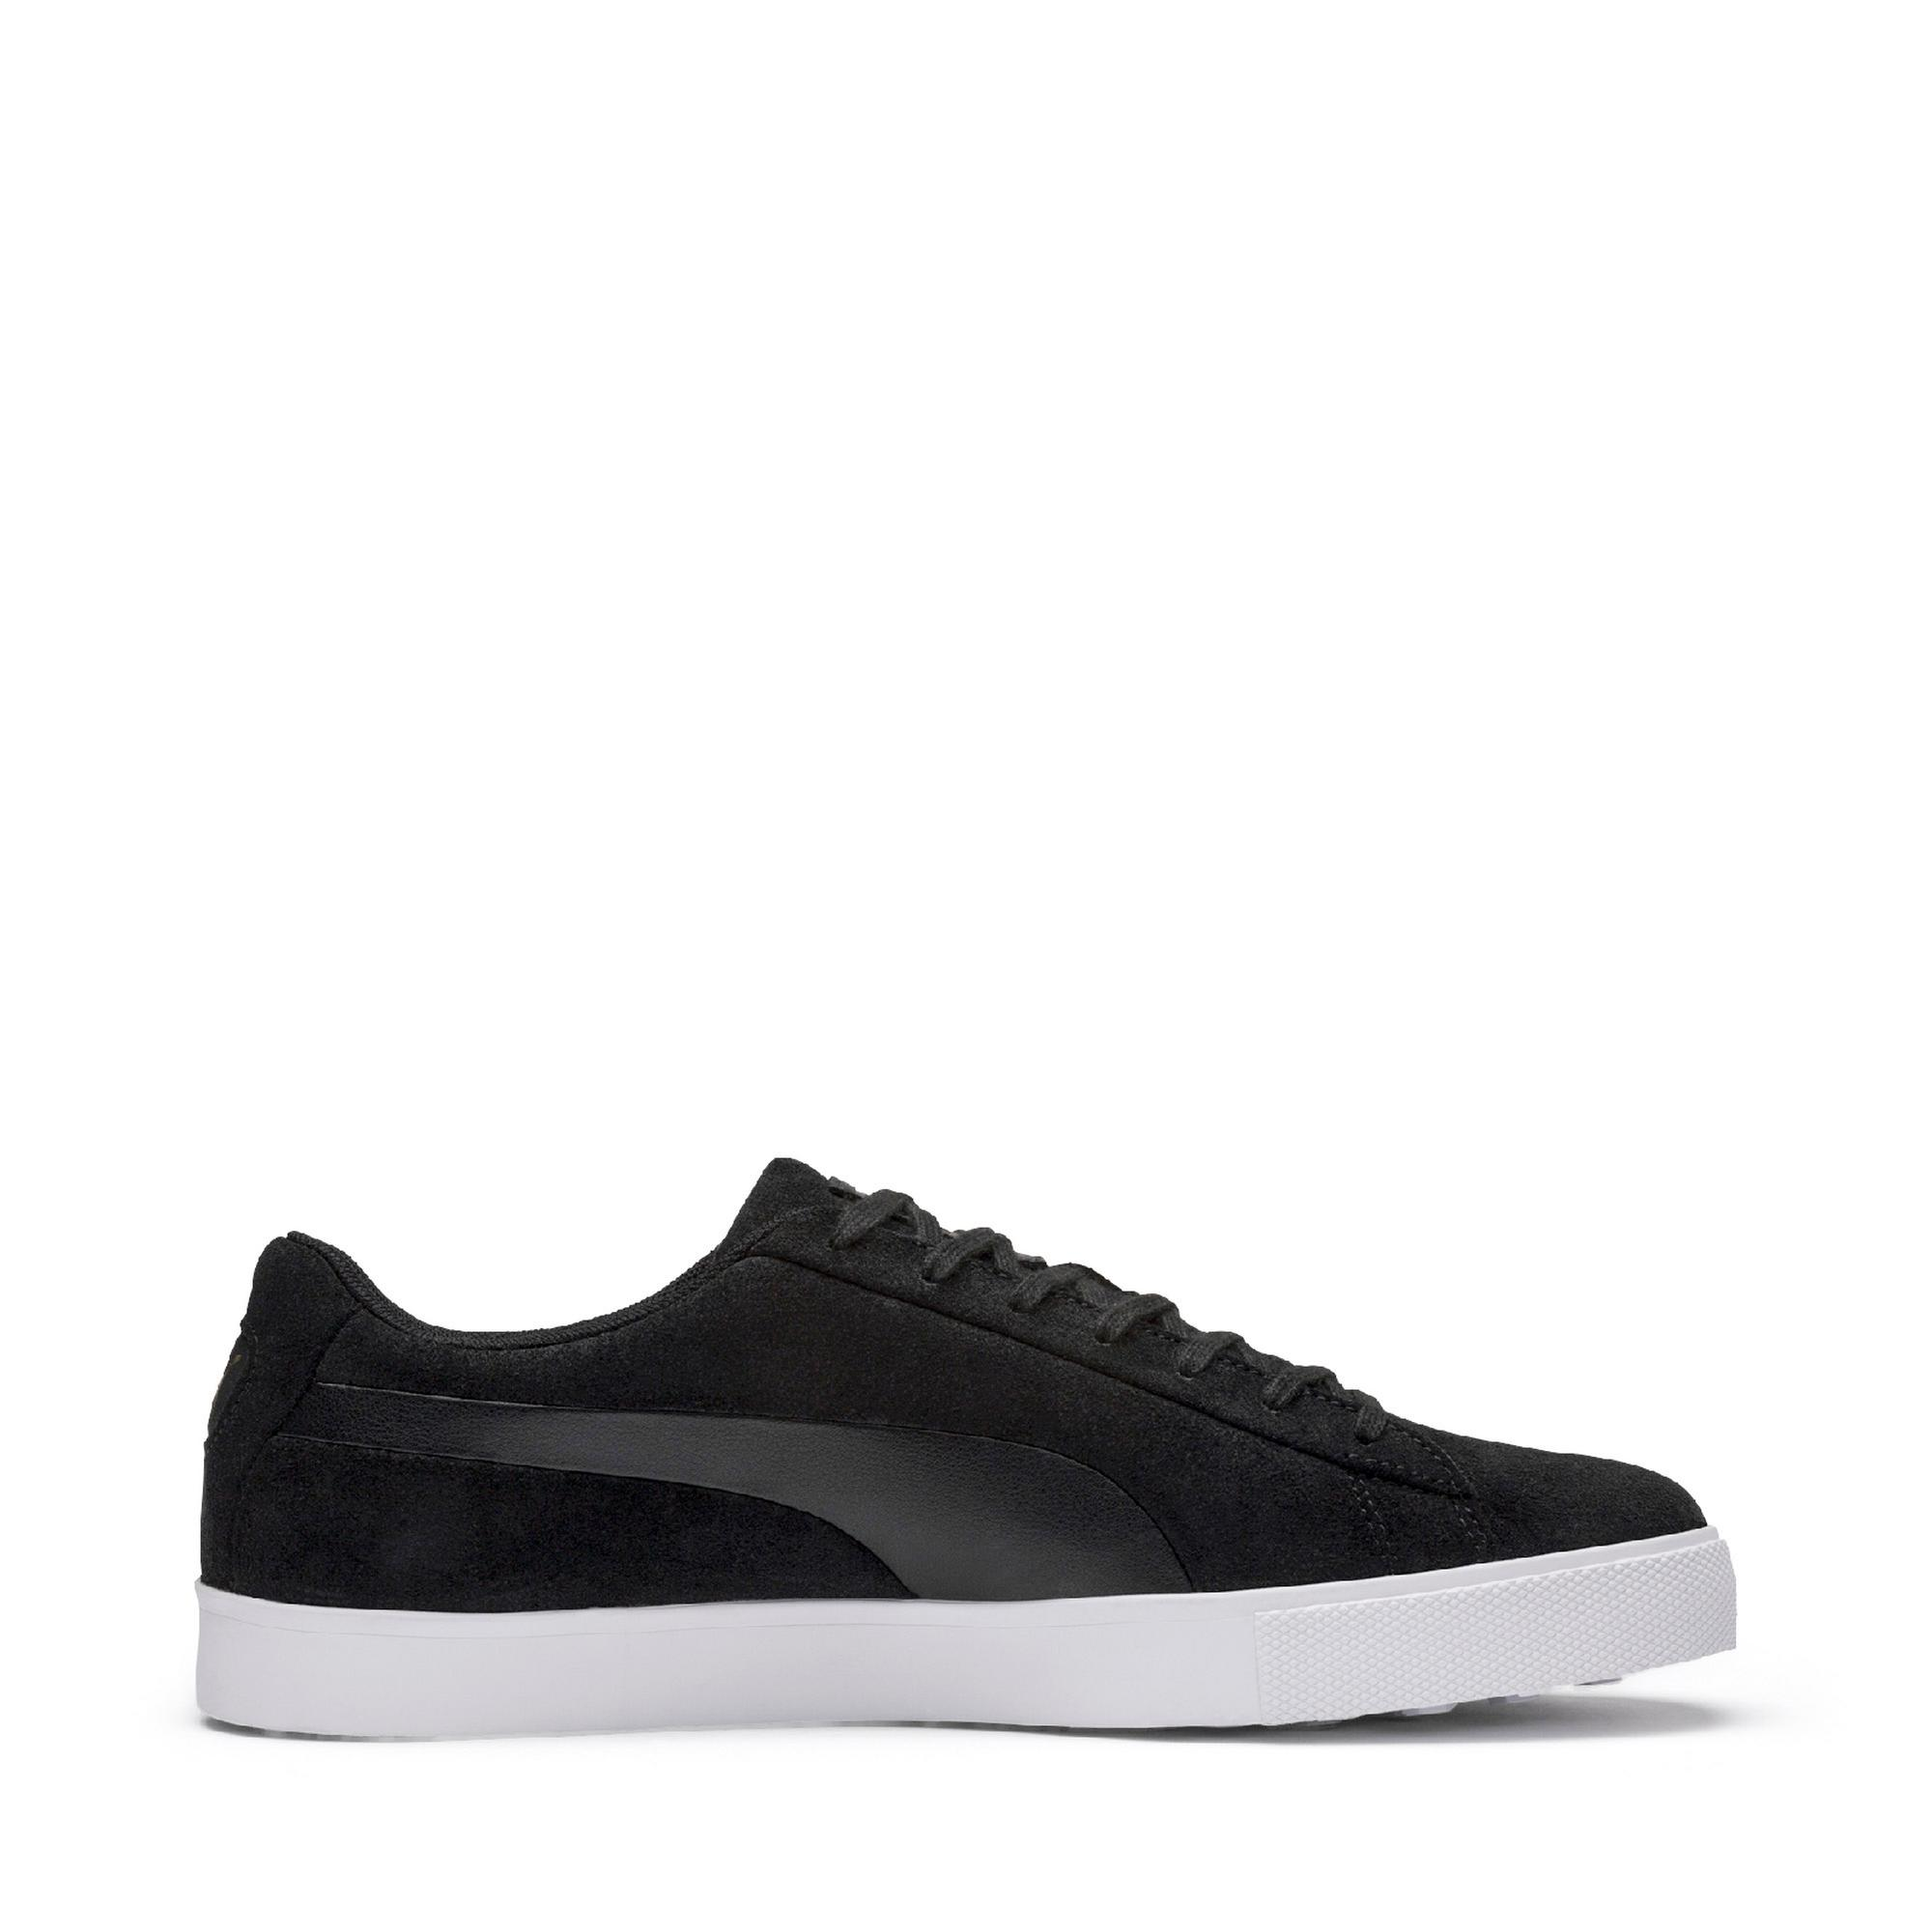 Men's Suede G Spikeless Golf Shoe